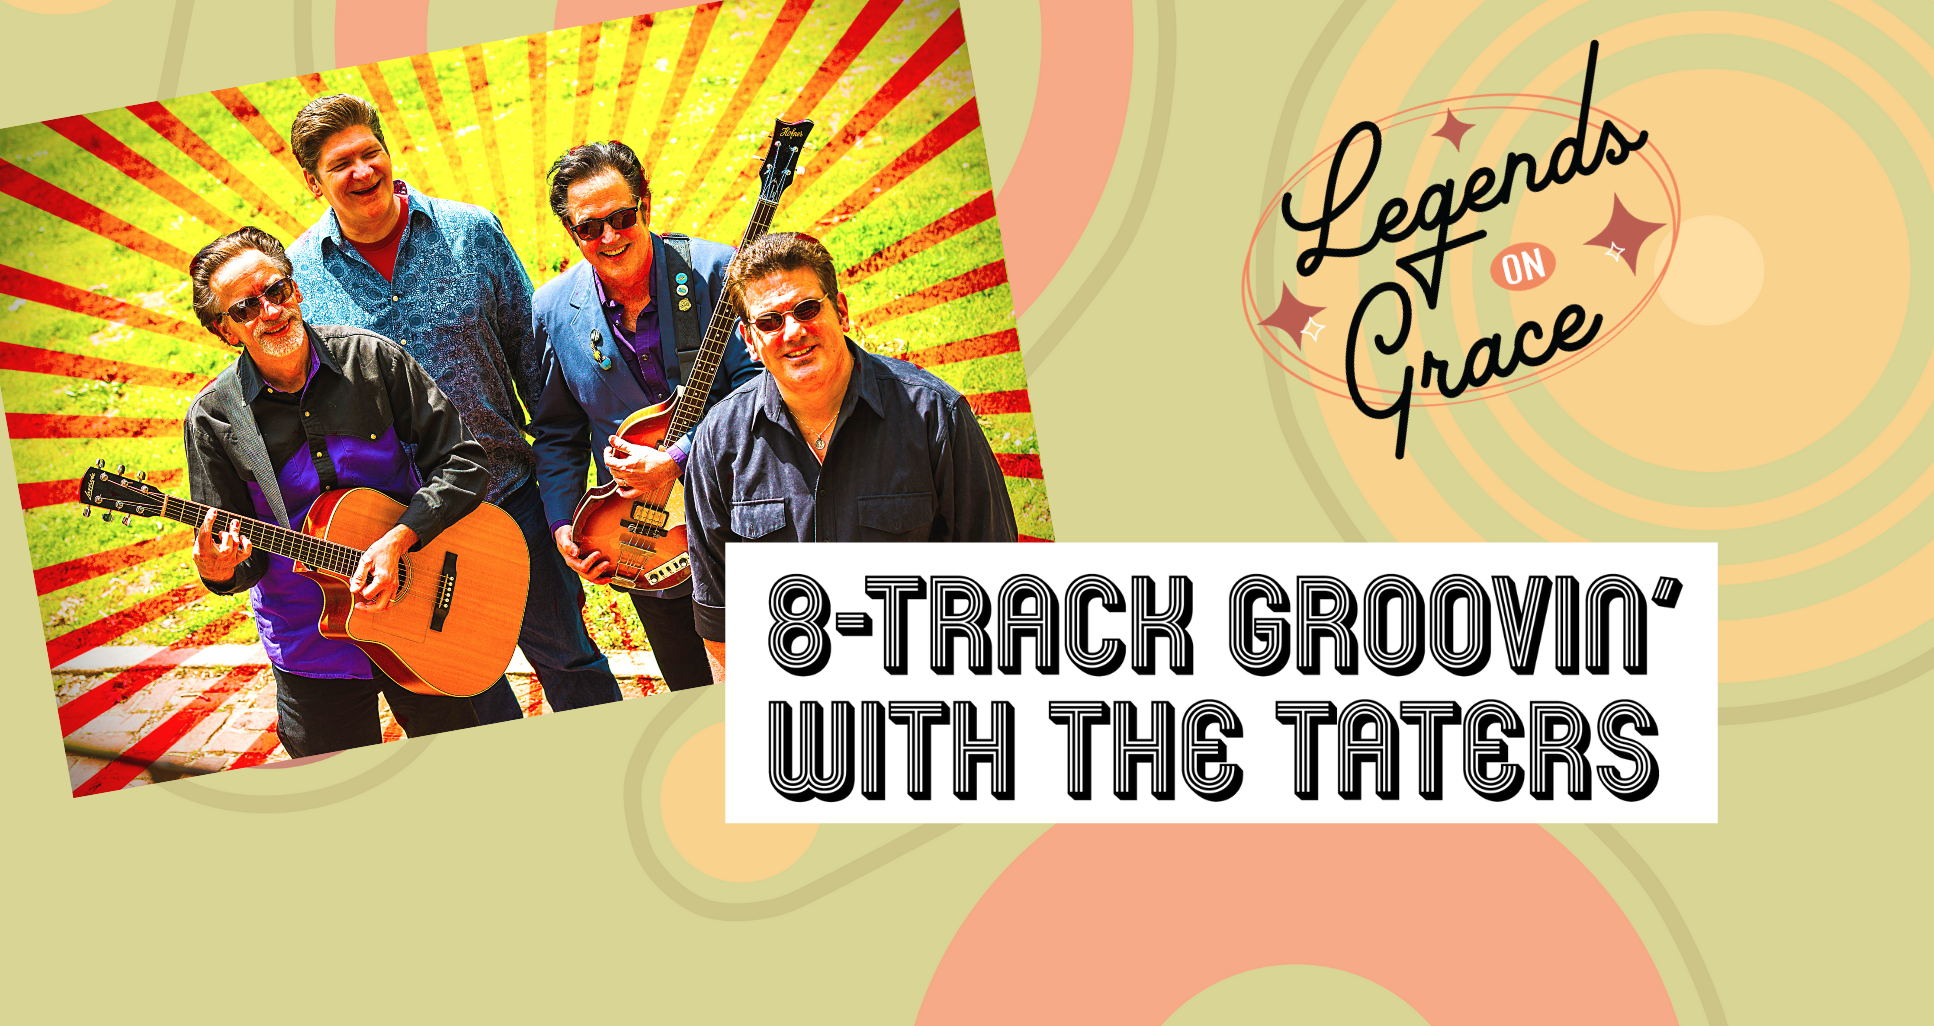 LEGENDS ON GRACE: 8-TRACK GROOIN' WITH THE TATERS